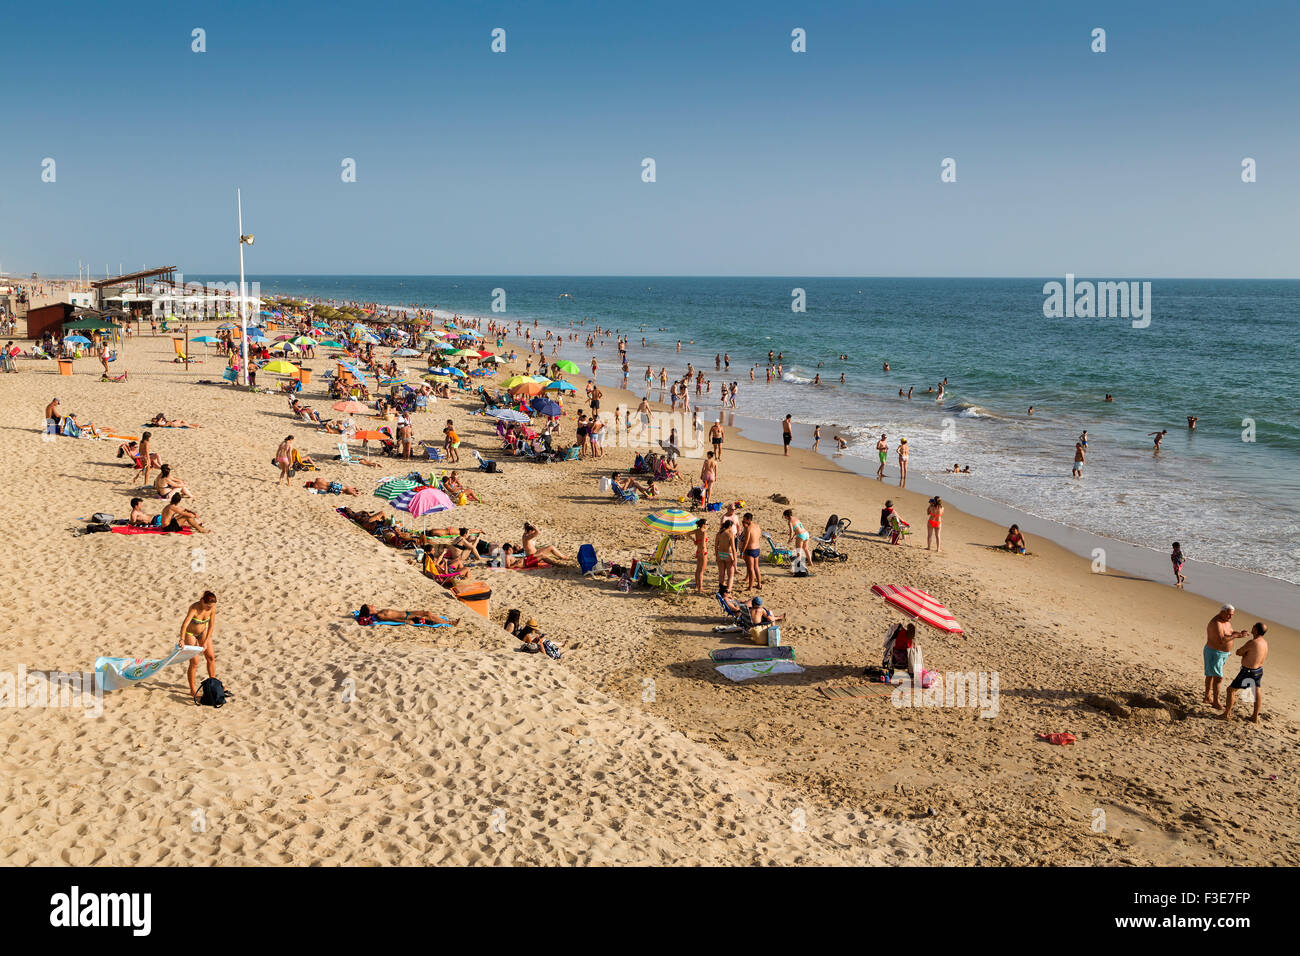 Santa María del Mar beach Cadiz Andalusia Spain - Stock Image